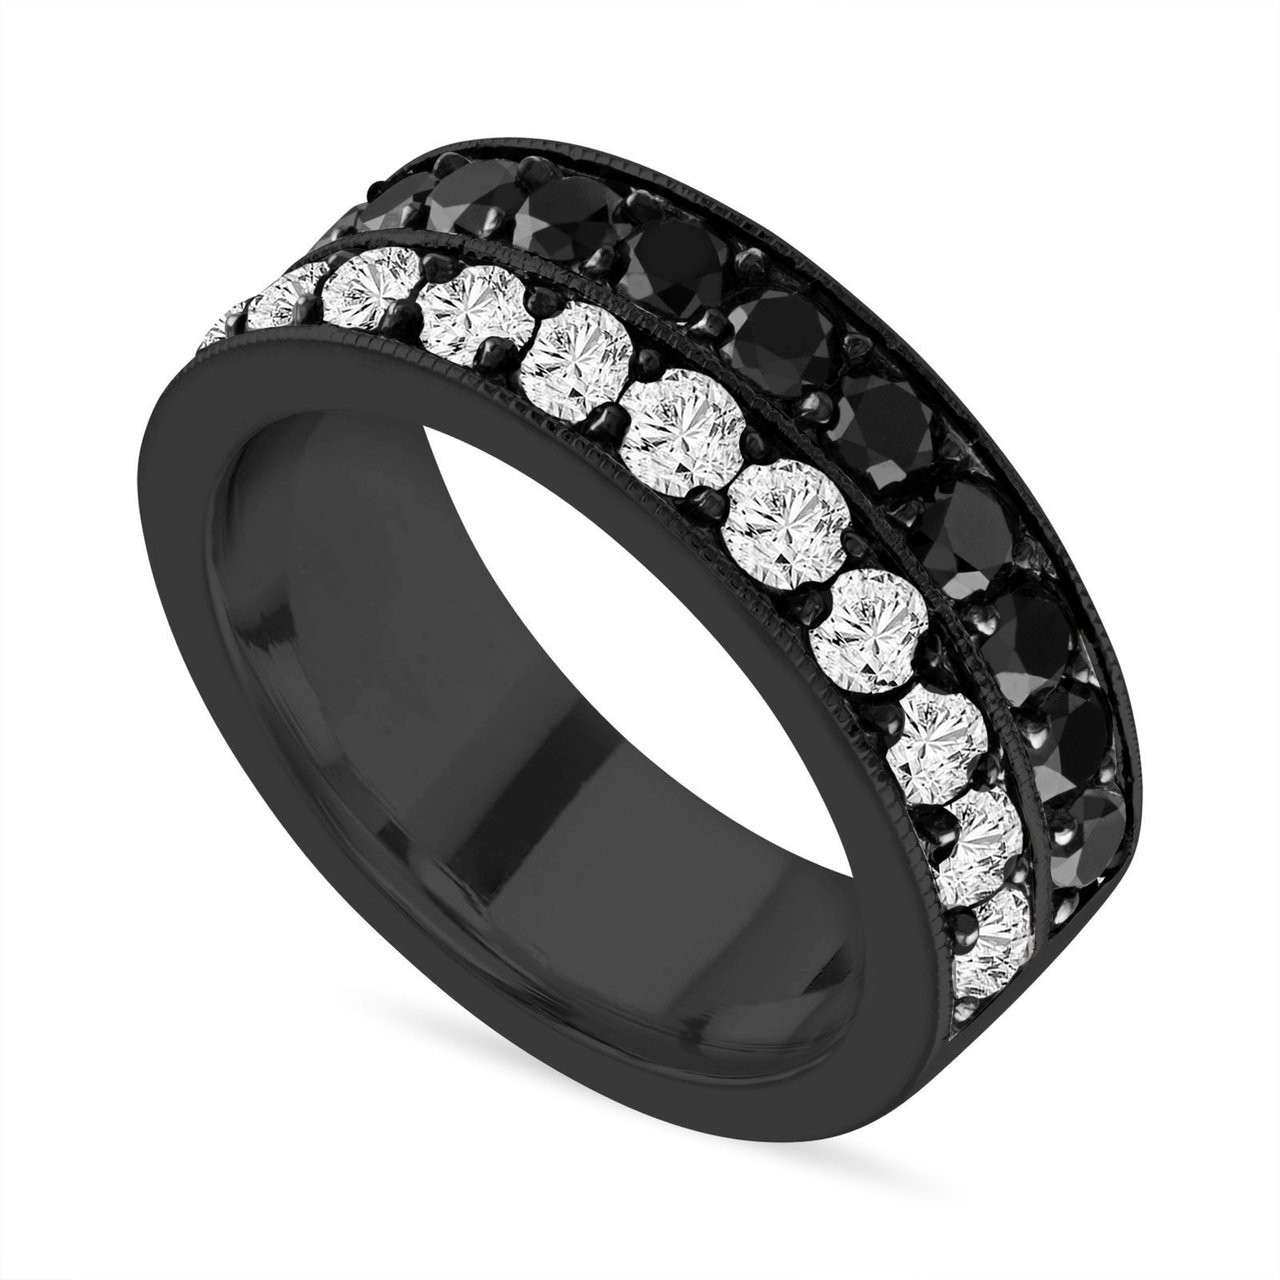 This is an image of Black & White Diamond Mens Wedding Band, Vintage Diamond Wedding Ring, 39.39 Carat 39 mm Two Row Pave 39K Black Gold Handmade Certified Unique